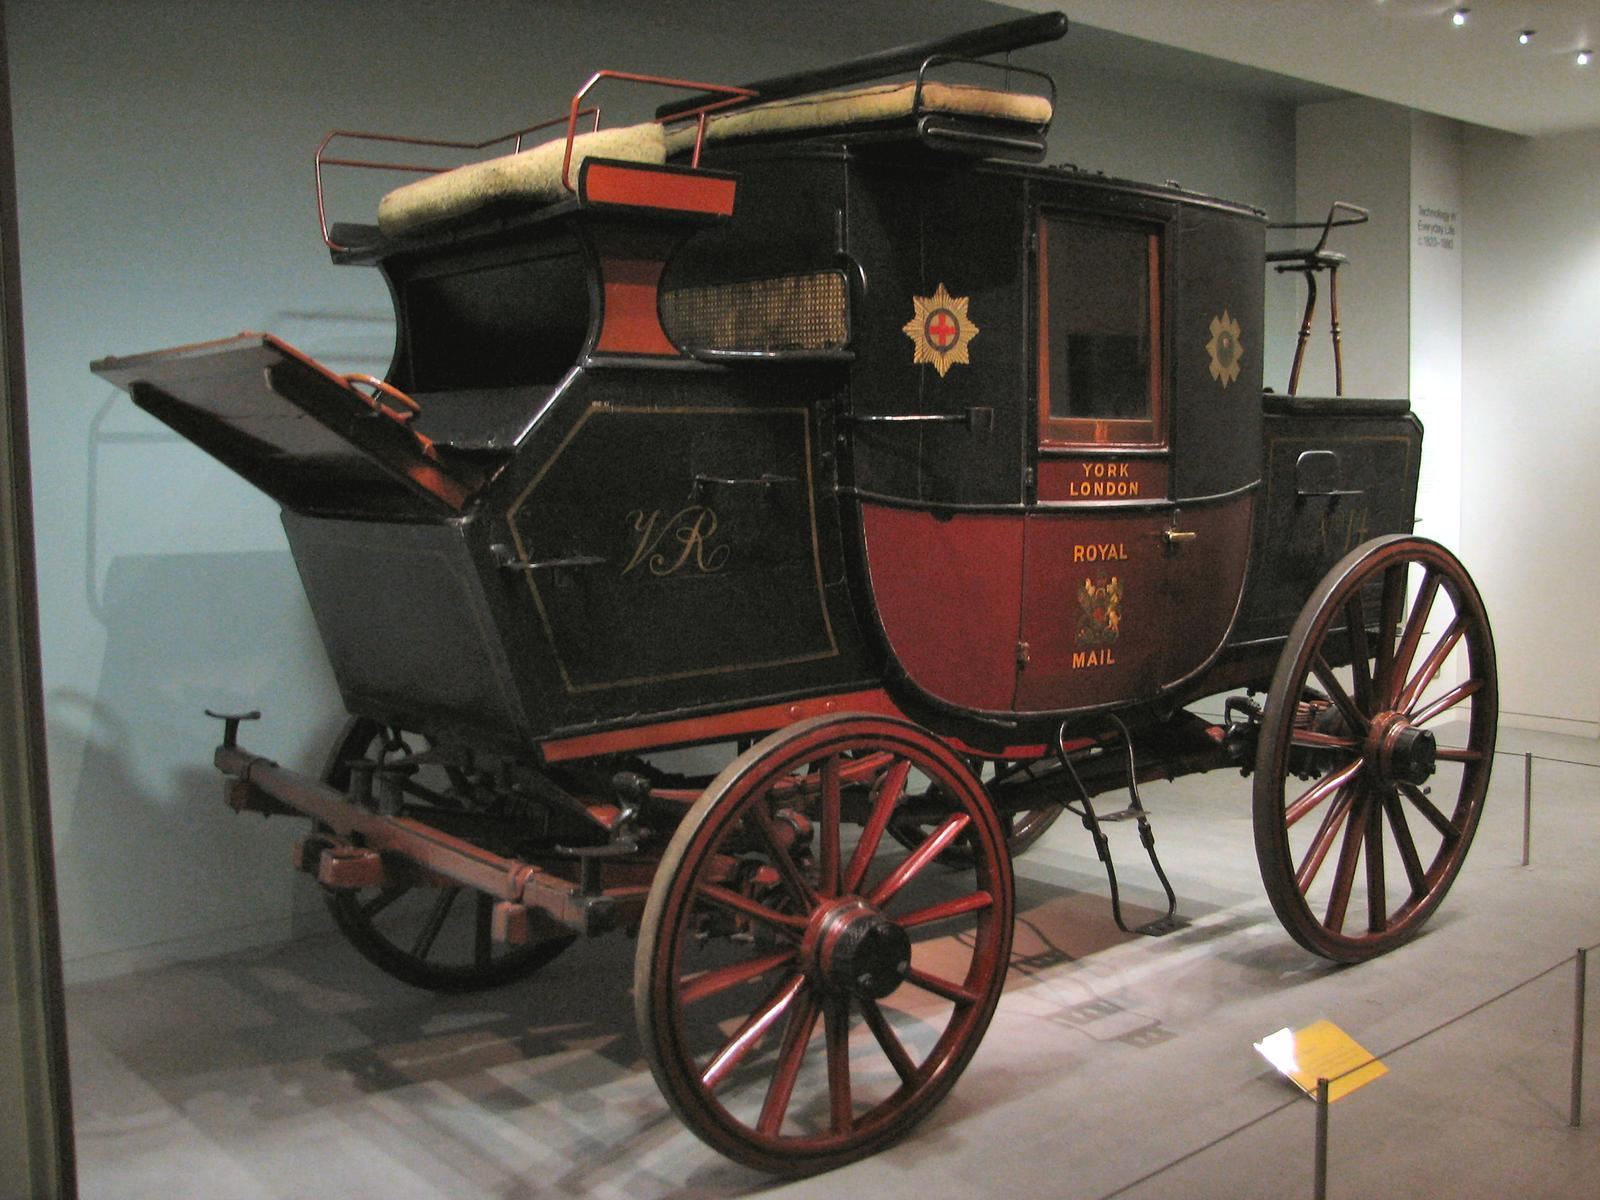 This Royal Mail coach was used between London and York circa the 1820s. It is one of the few genuine surviving mail coaches, preserved at the Science Museum in London. Photo taken on July 5, 2006.